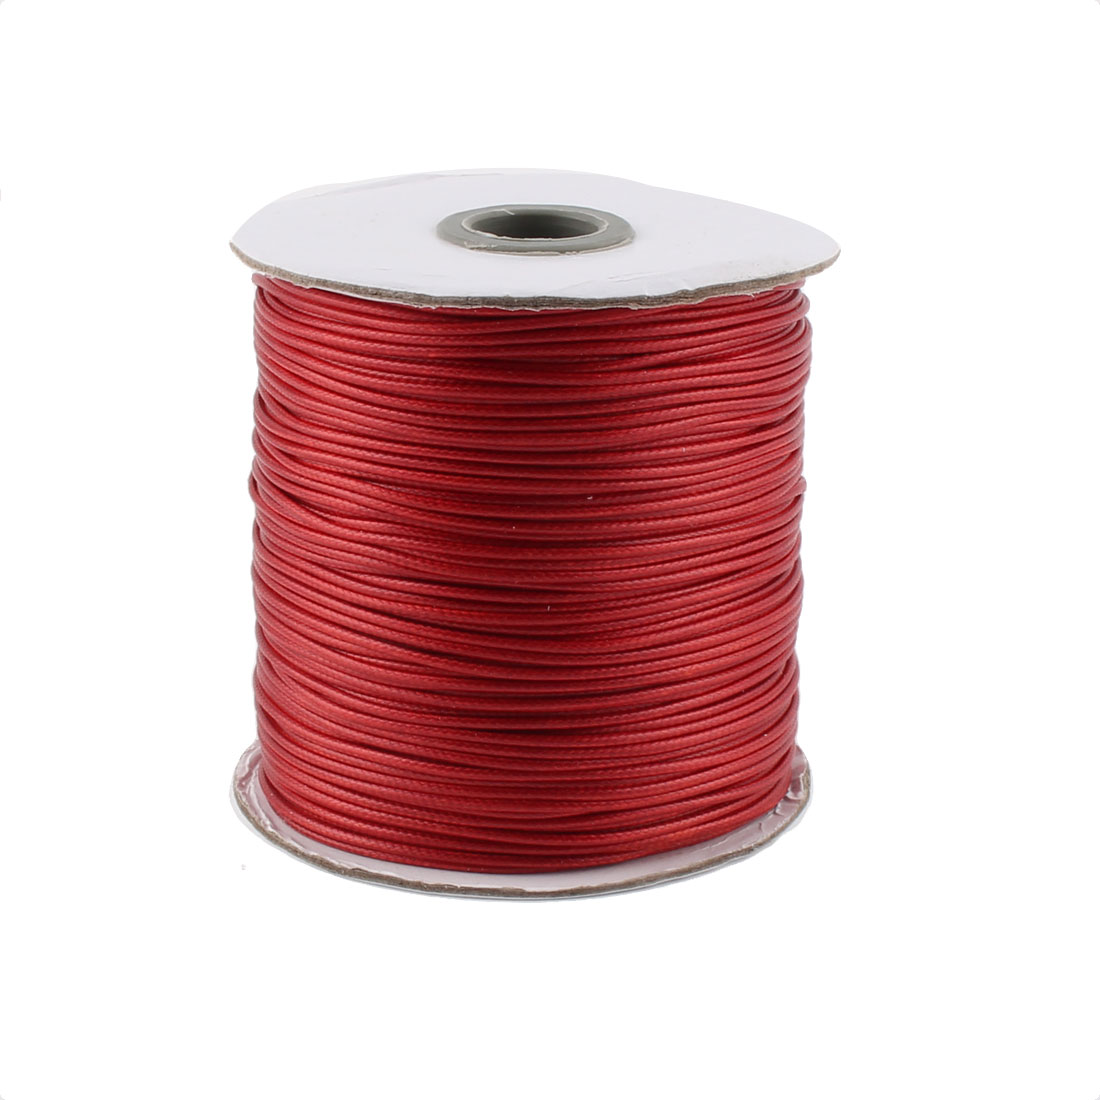 DIY Bracelet Necklace Cotton Waxed Making String Beading Thread Cord Roll Dark Red 190 Yard